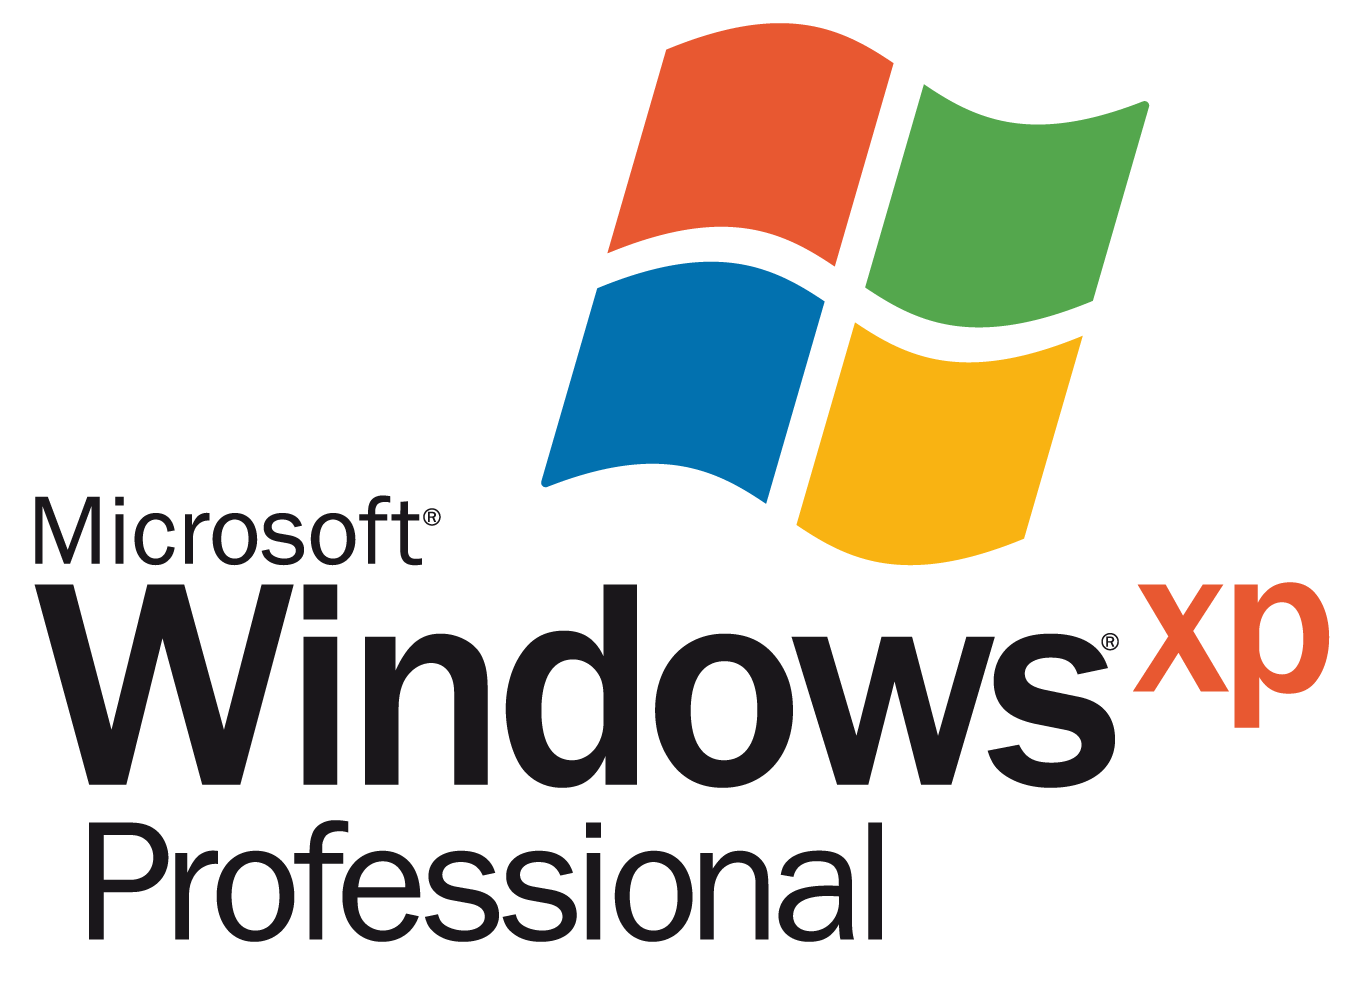 Image windows xp logo fantendo nintendo for Windows logo png